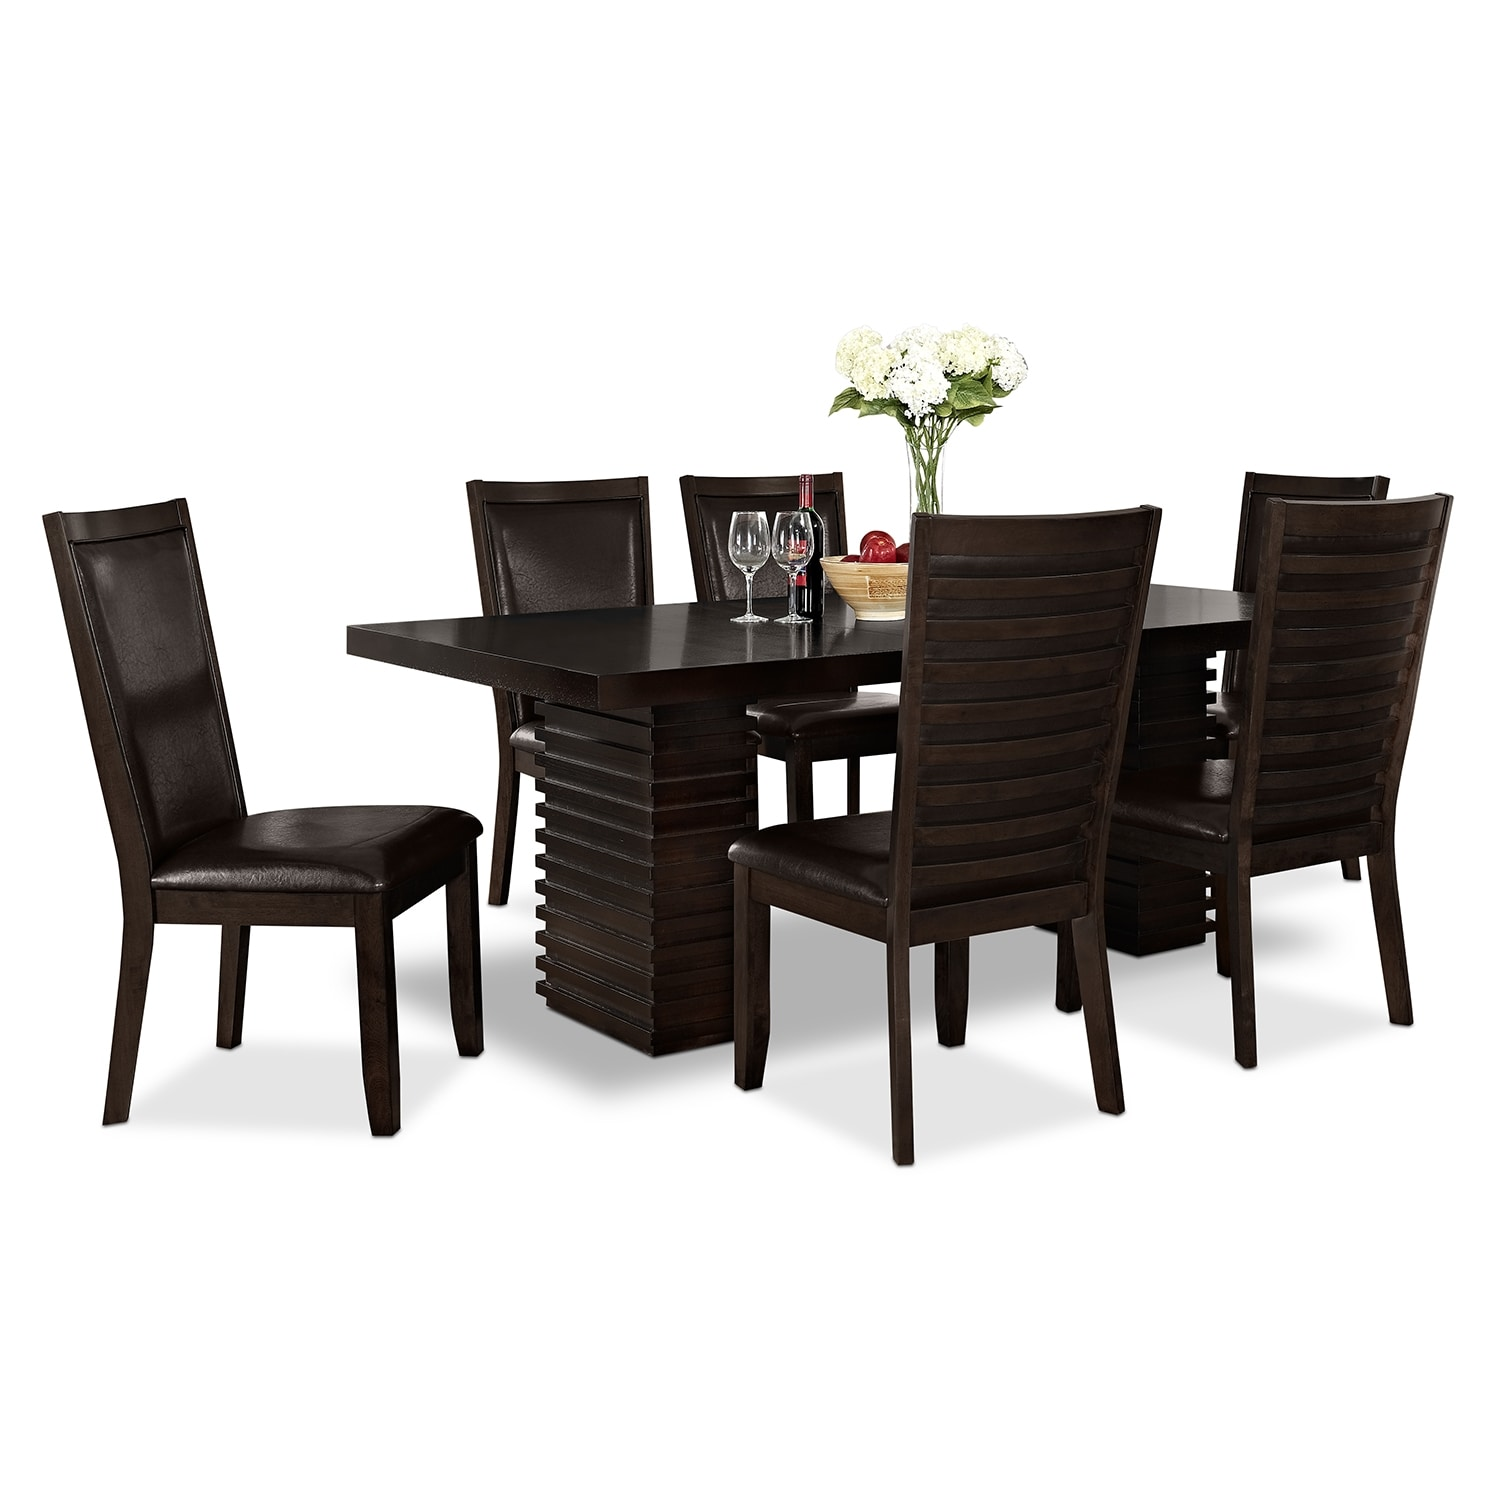 Paragon Table And 6 Chairs   Merlot And Brown Part 53